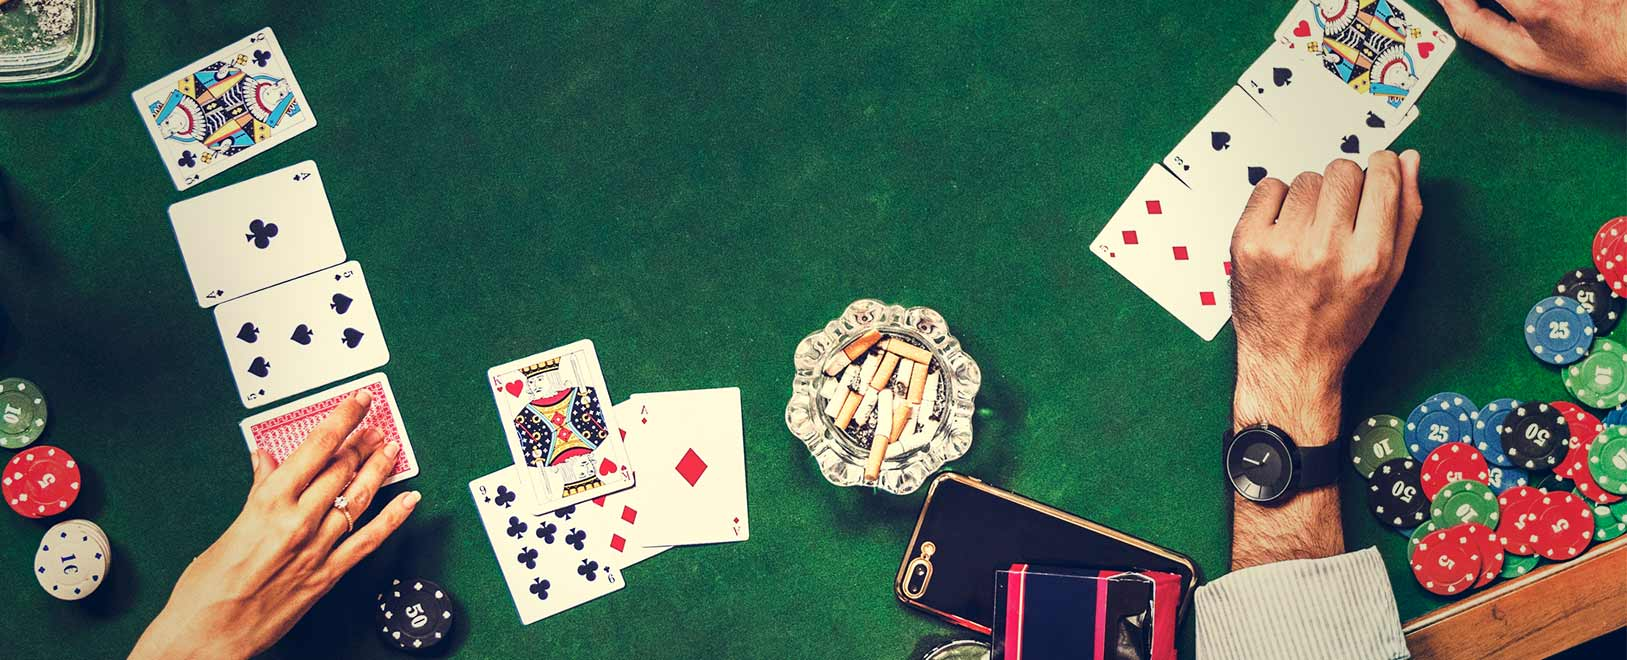 How to Play Heads Up Poker - Online Poker Tips at Bodog